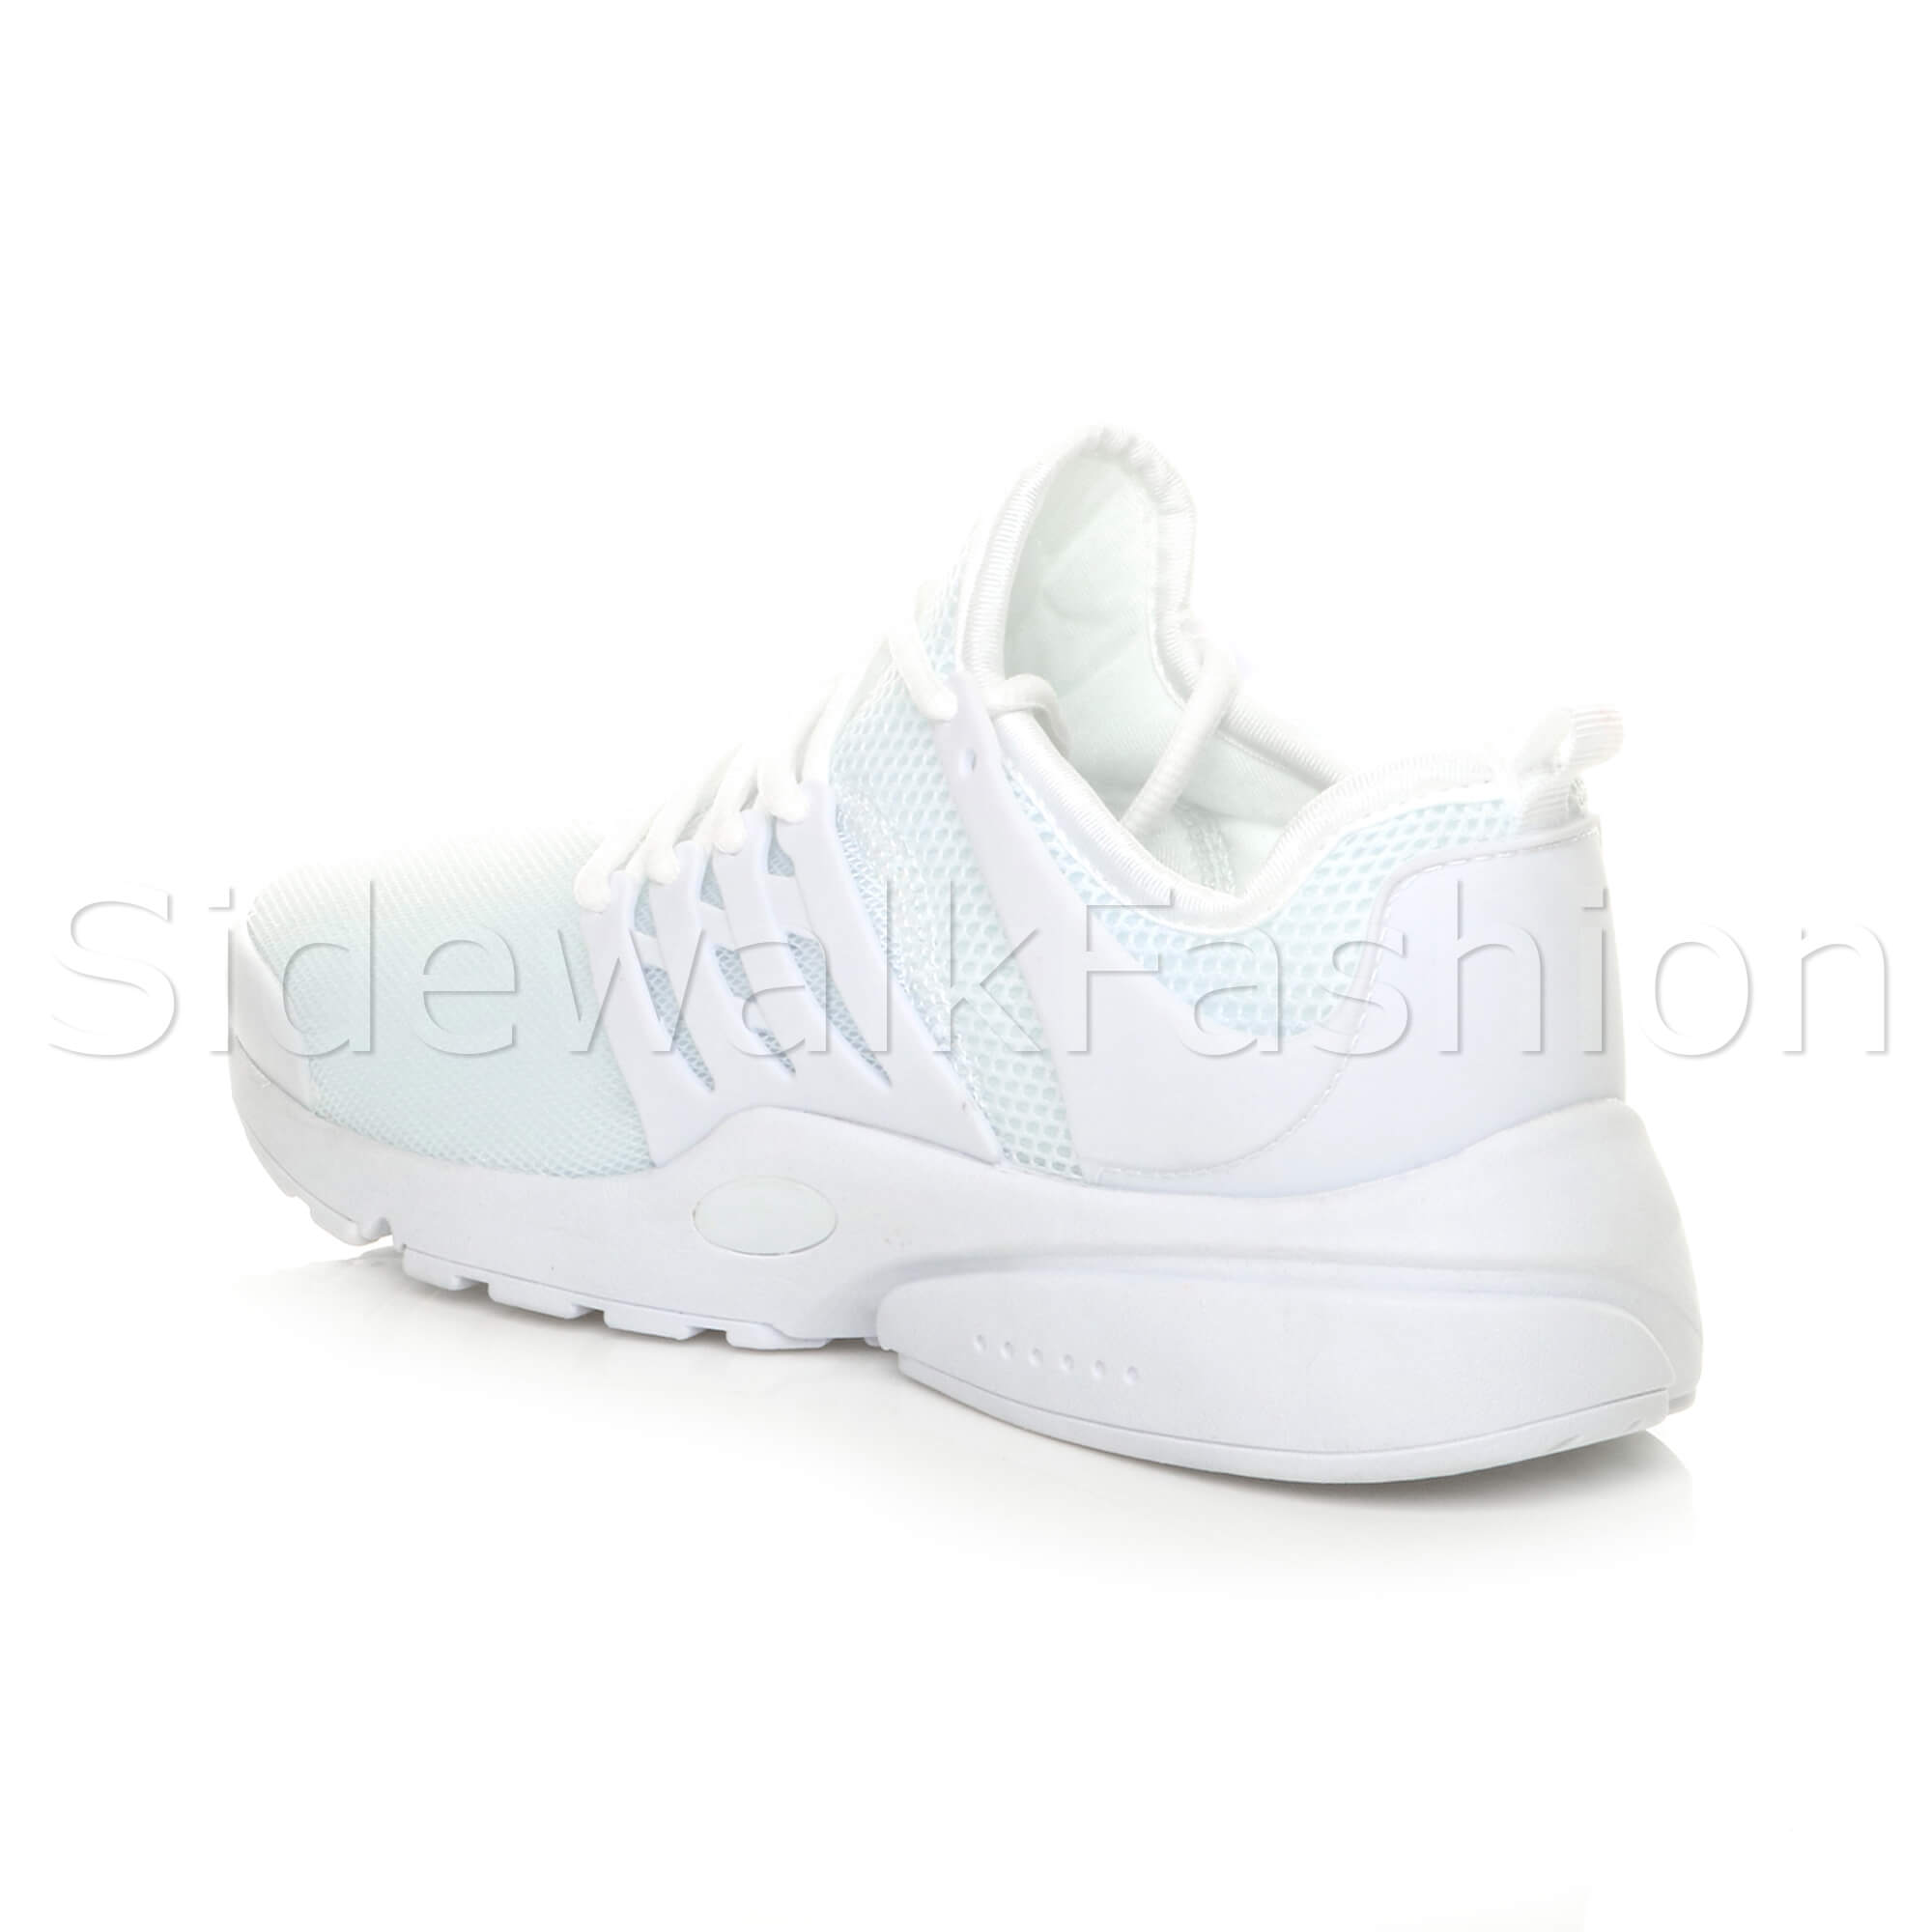 Mens-lace-up-sports-casual-low-top-gym-running-flexible-sneakers-trainers-size miniatuur 29